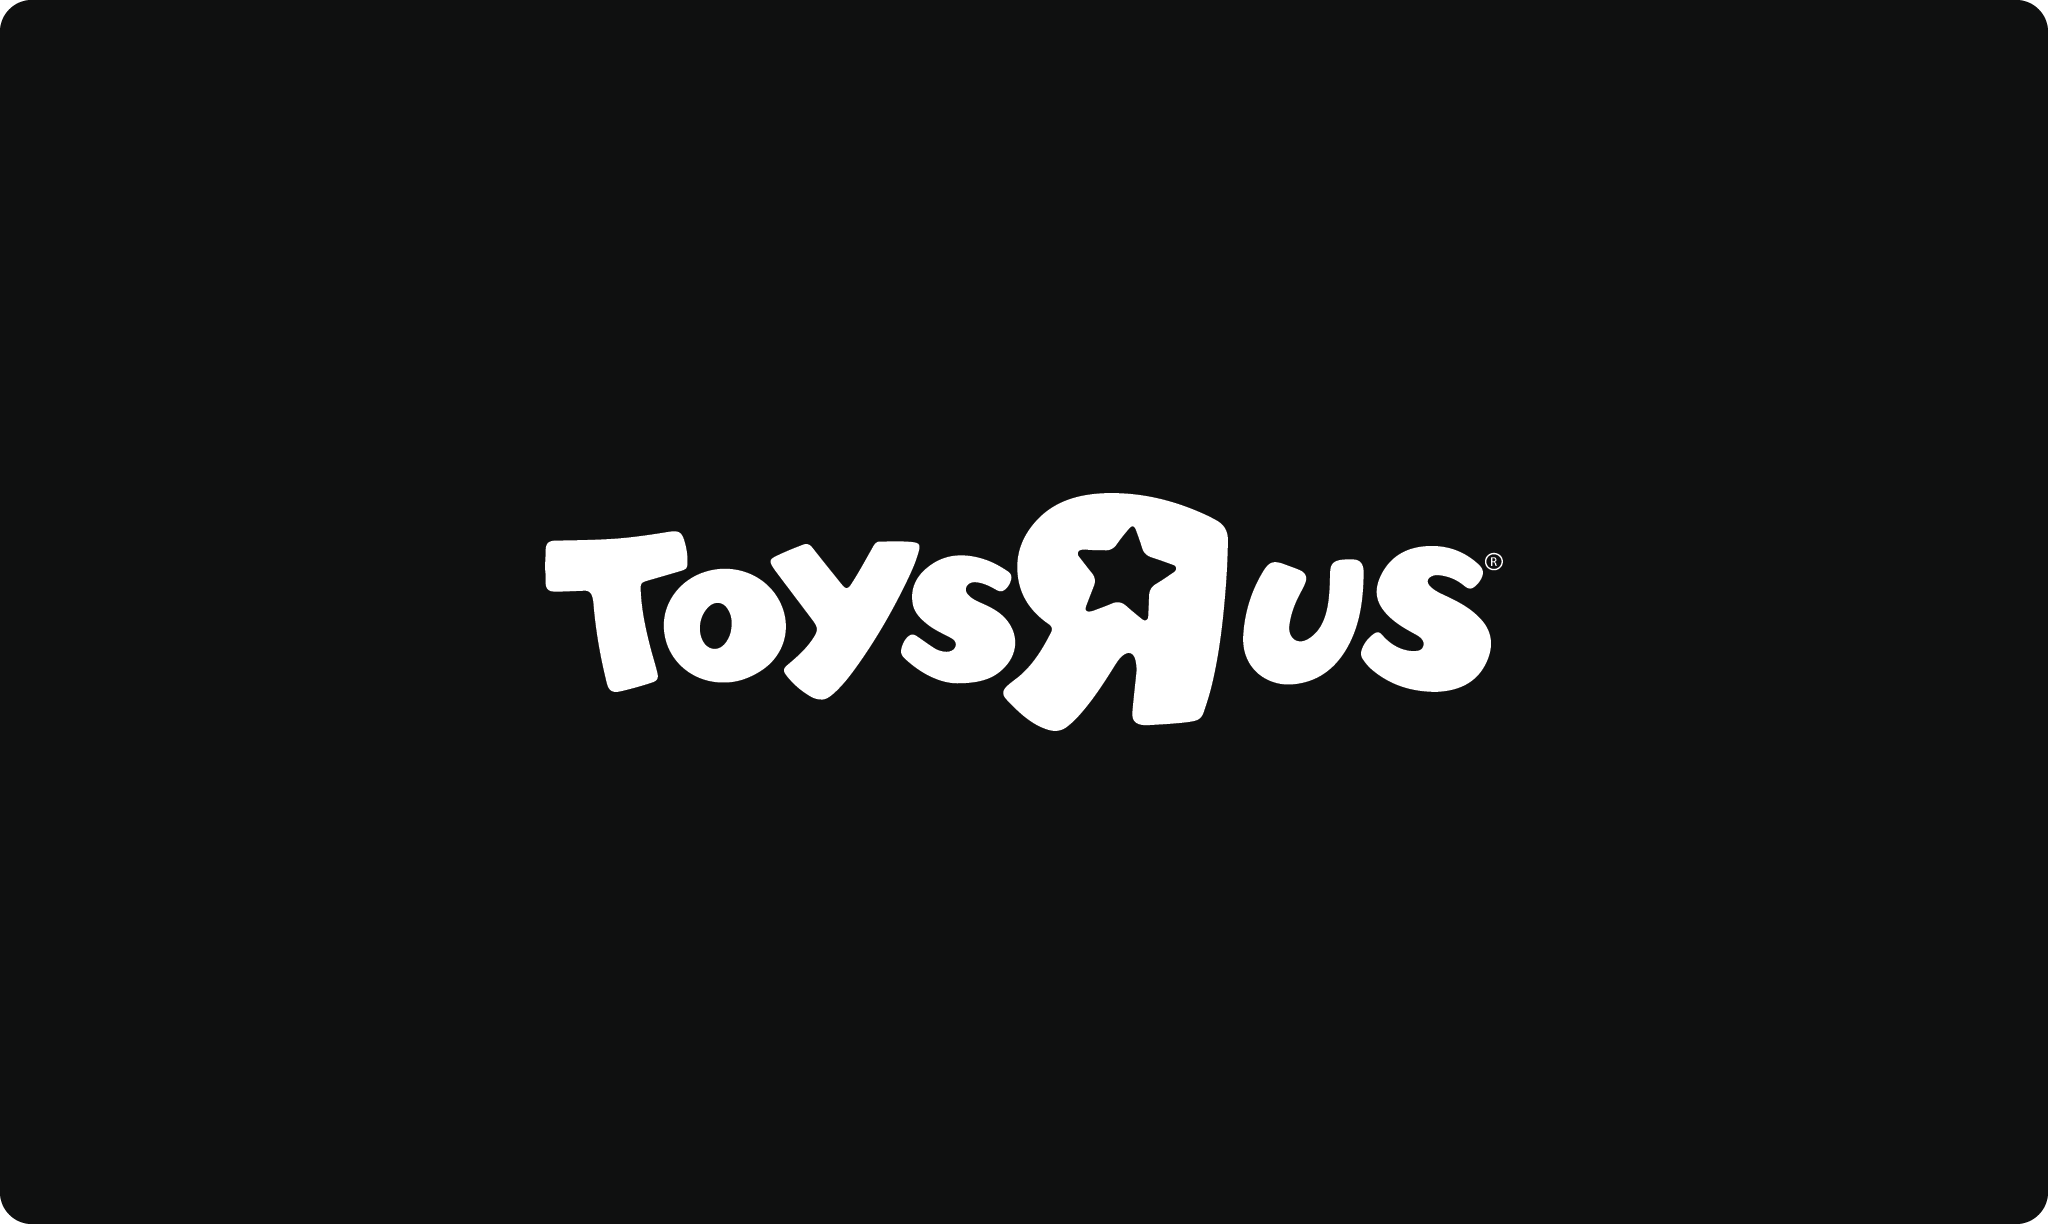 ToysRUs logo in black and white